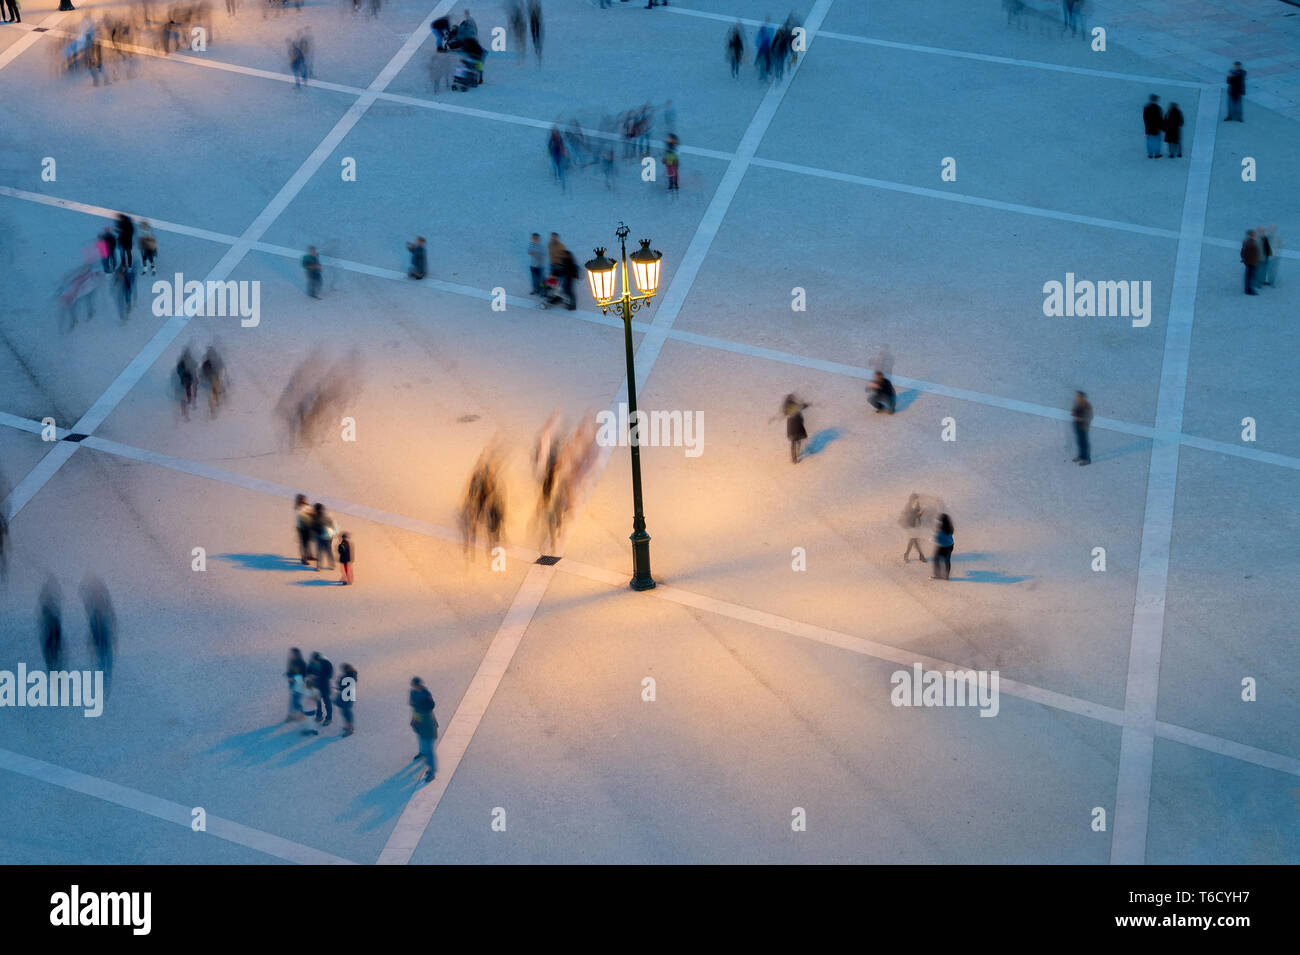 People motion blur aerial view - Stock Image